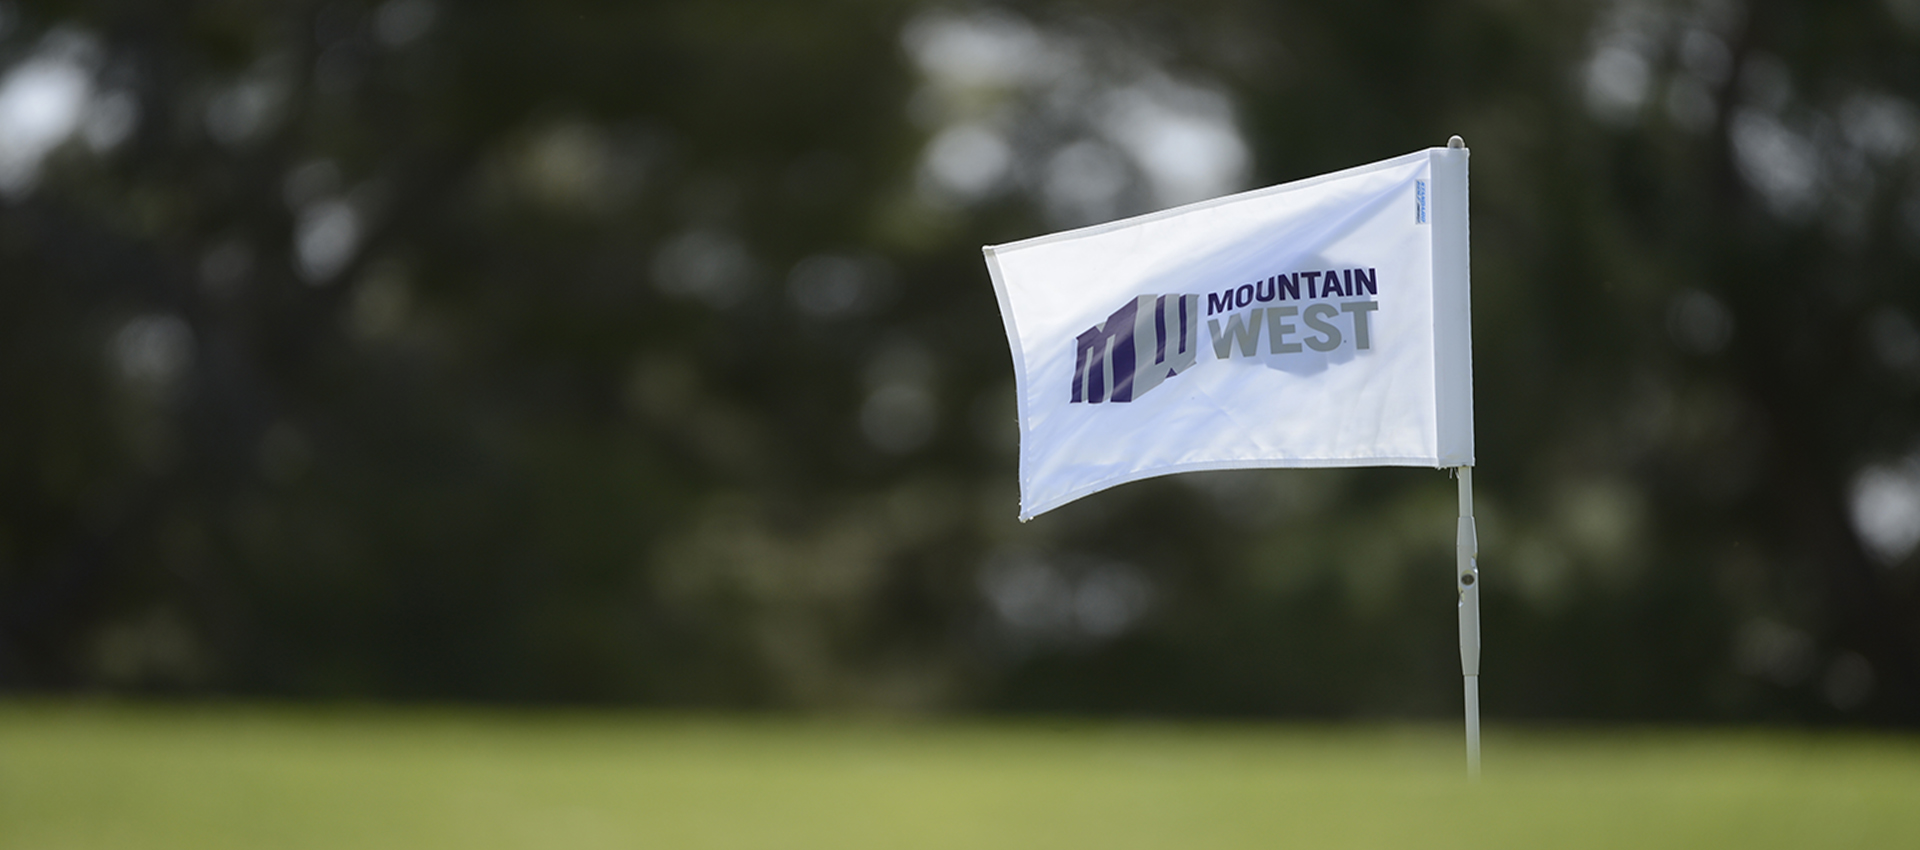 BRENDAN FALVEY APPOINTED GENERAL MANAGER FOR  LEARFIELD'S MOUNTAIN WEST SPORTS PROPERTIES